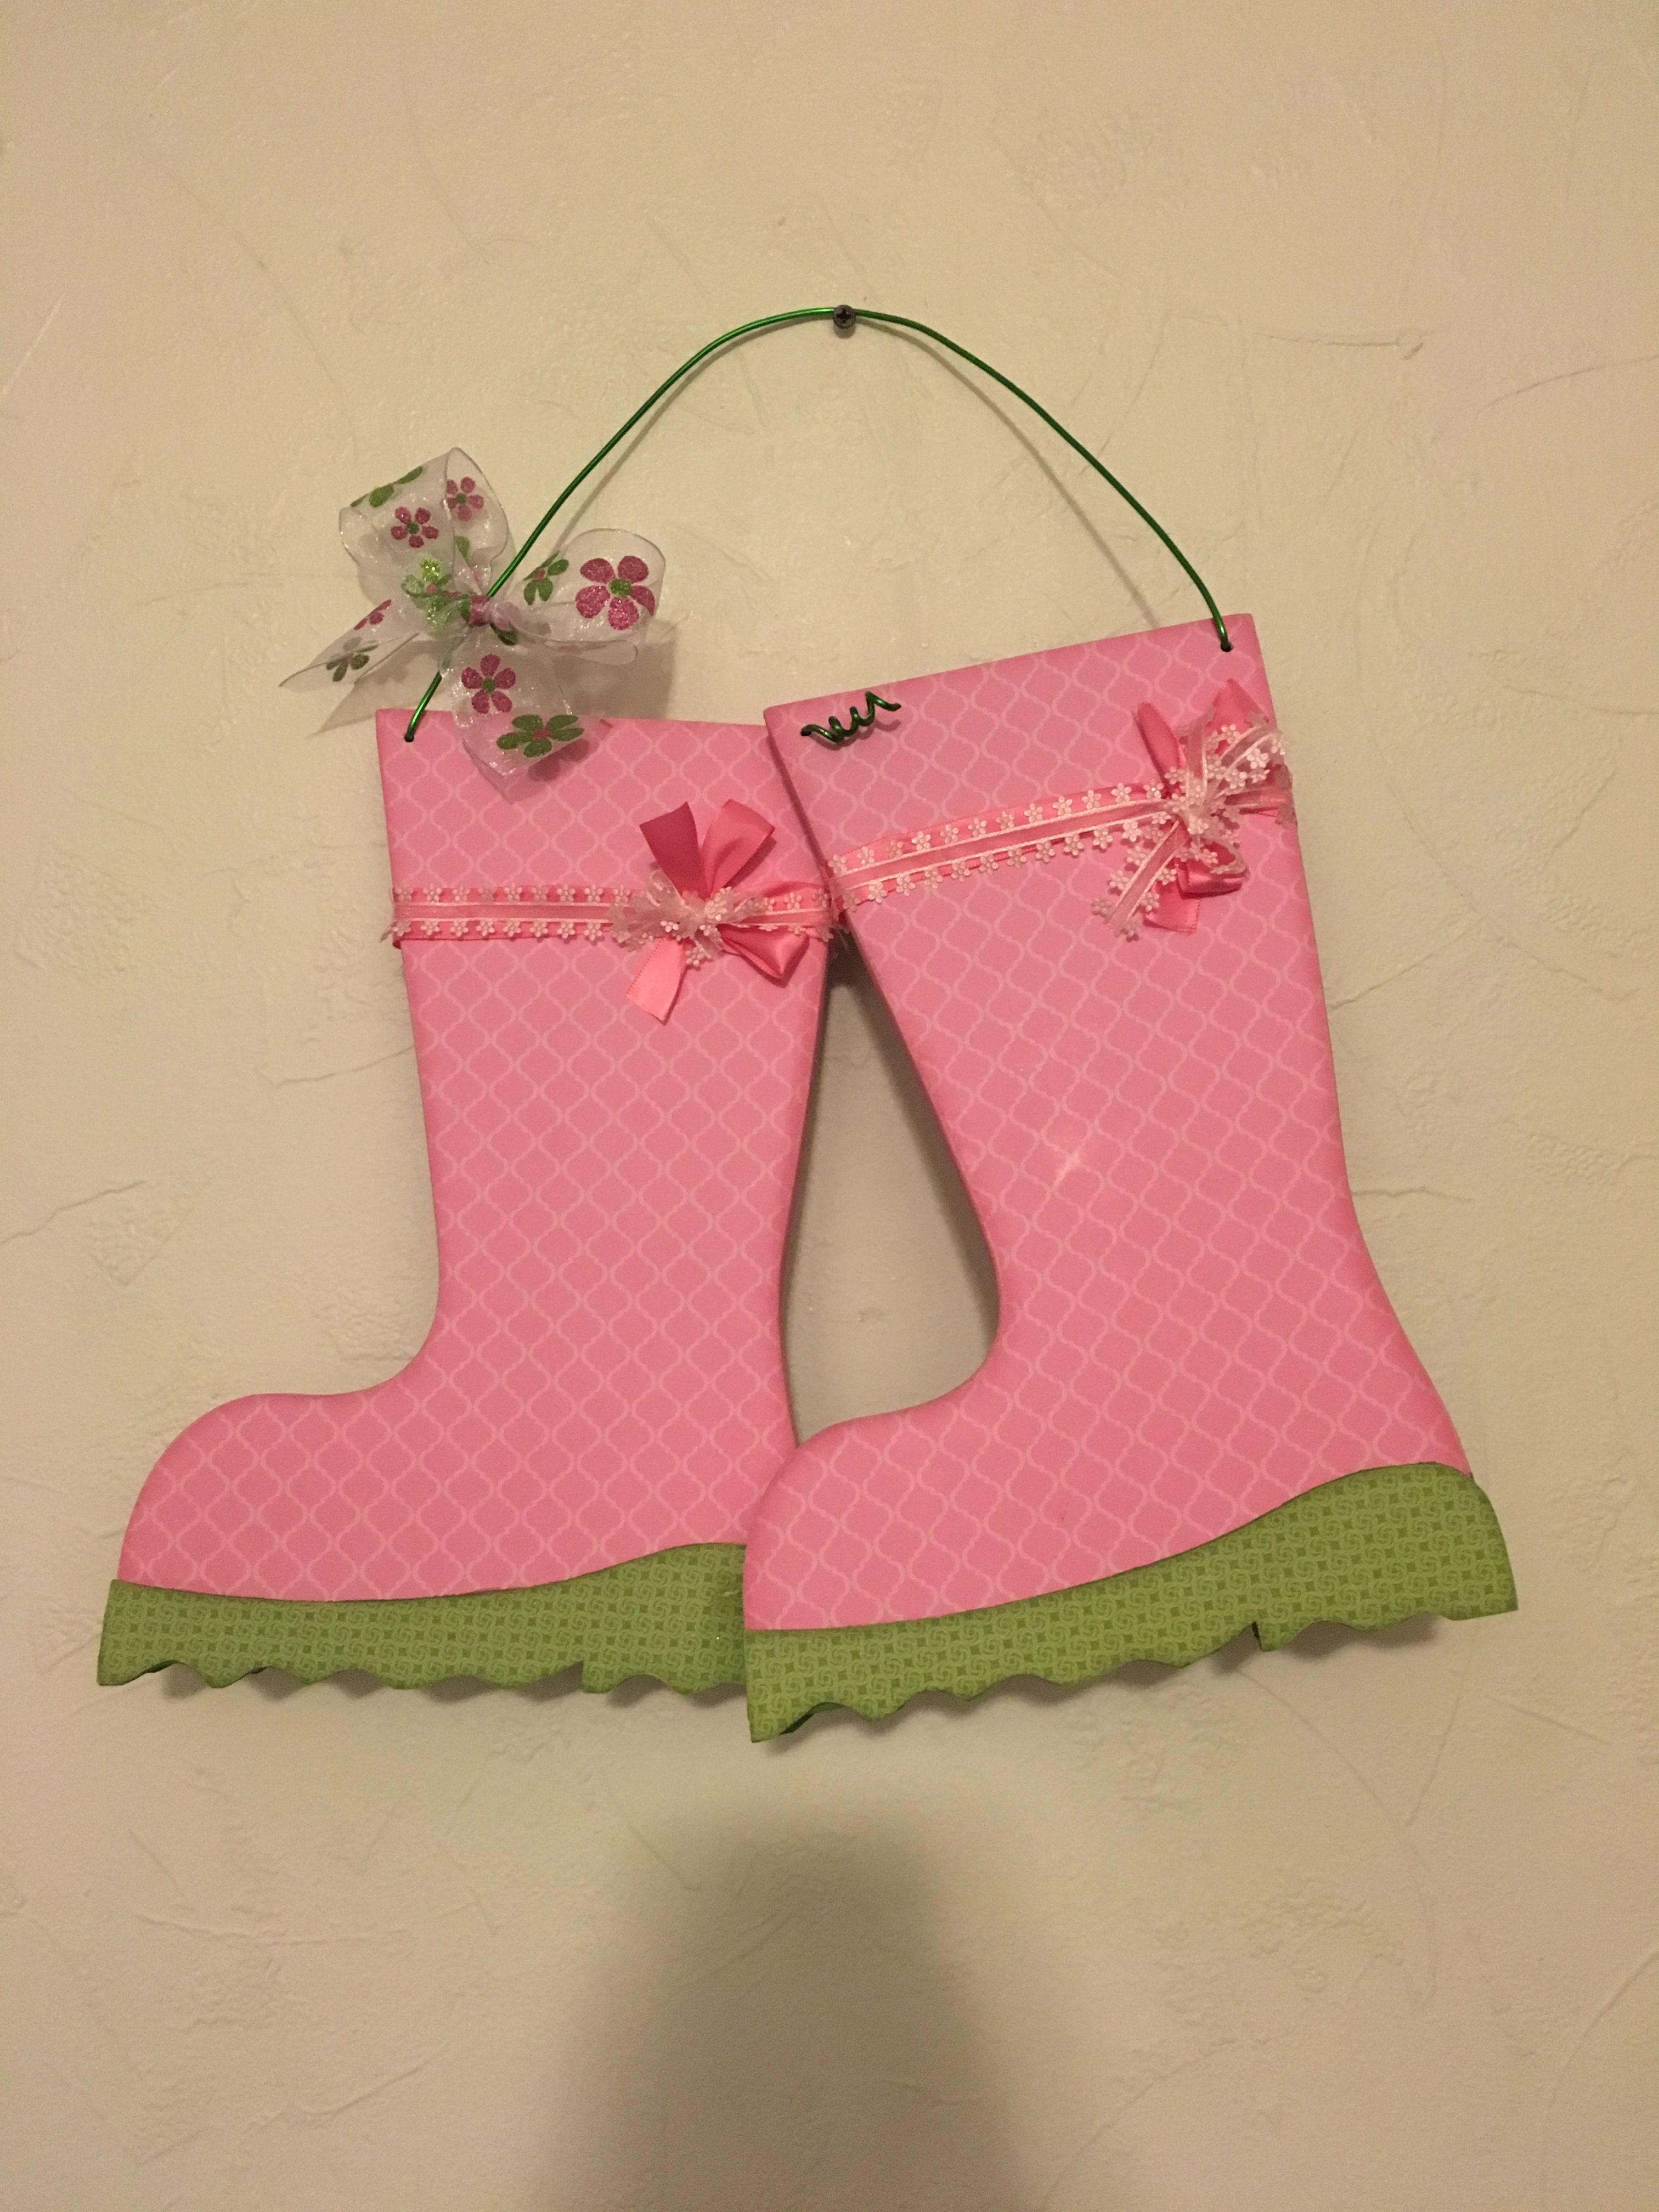 Hanging Rain Boots From Wood Creations Side 1